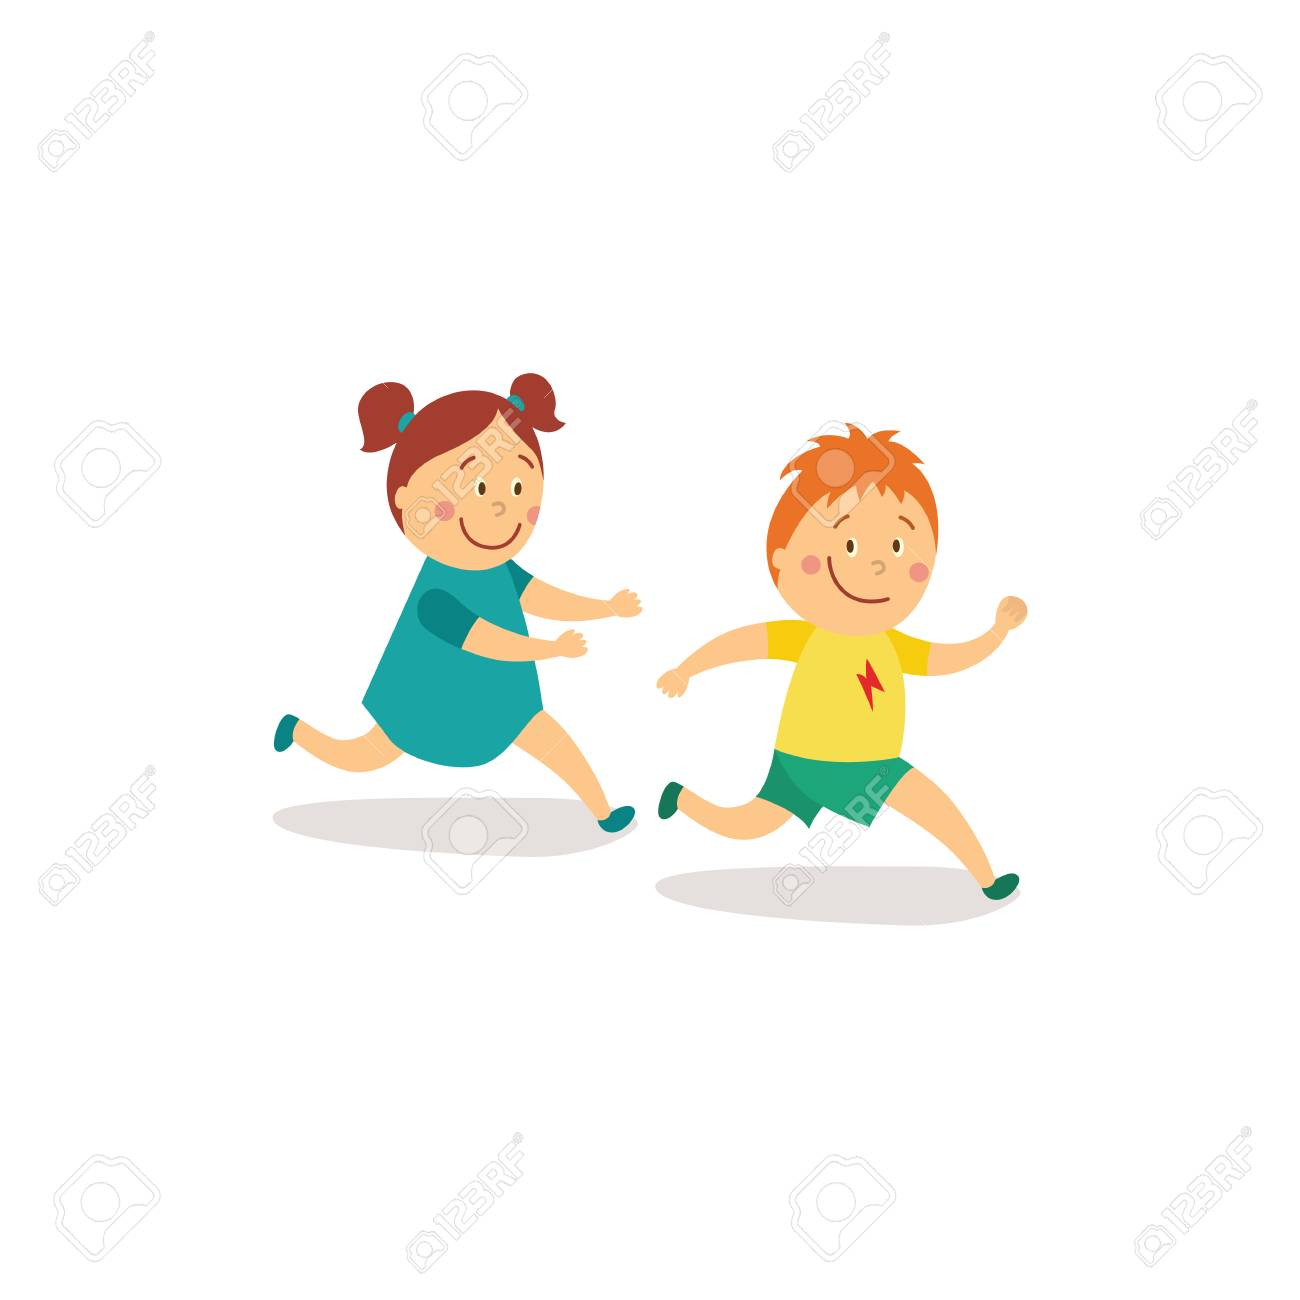 Vector Flat Cartoon Girl And Boy Kids Having Fun Playing Catch Up Royalty Free Cliparts Vectors And Stock Illustration Image 87535215